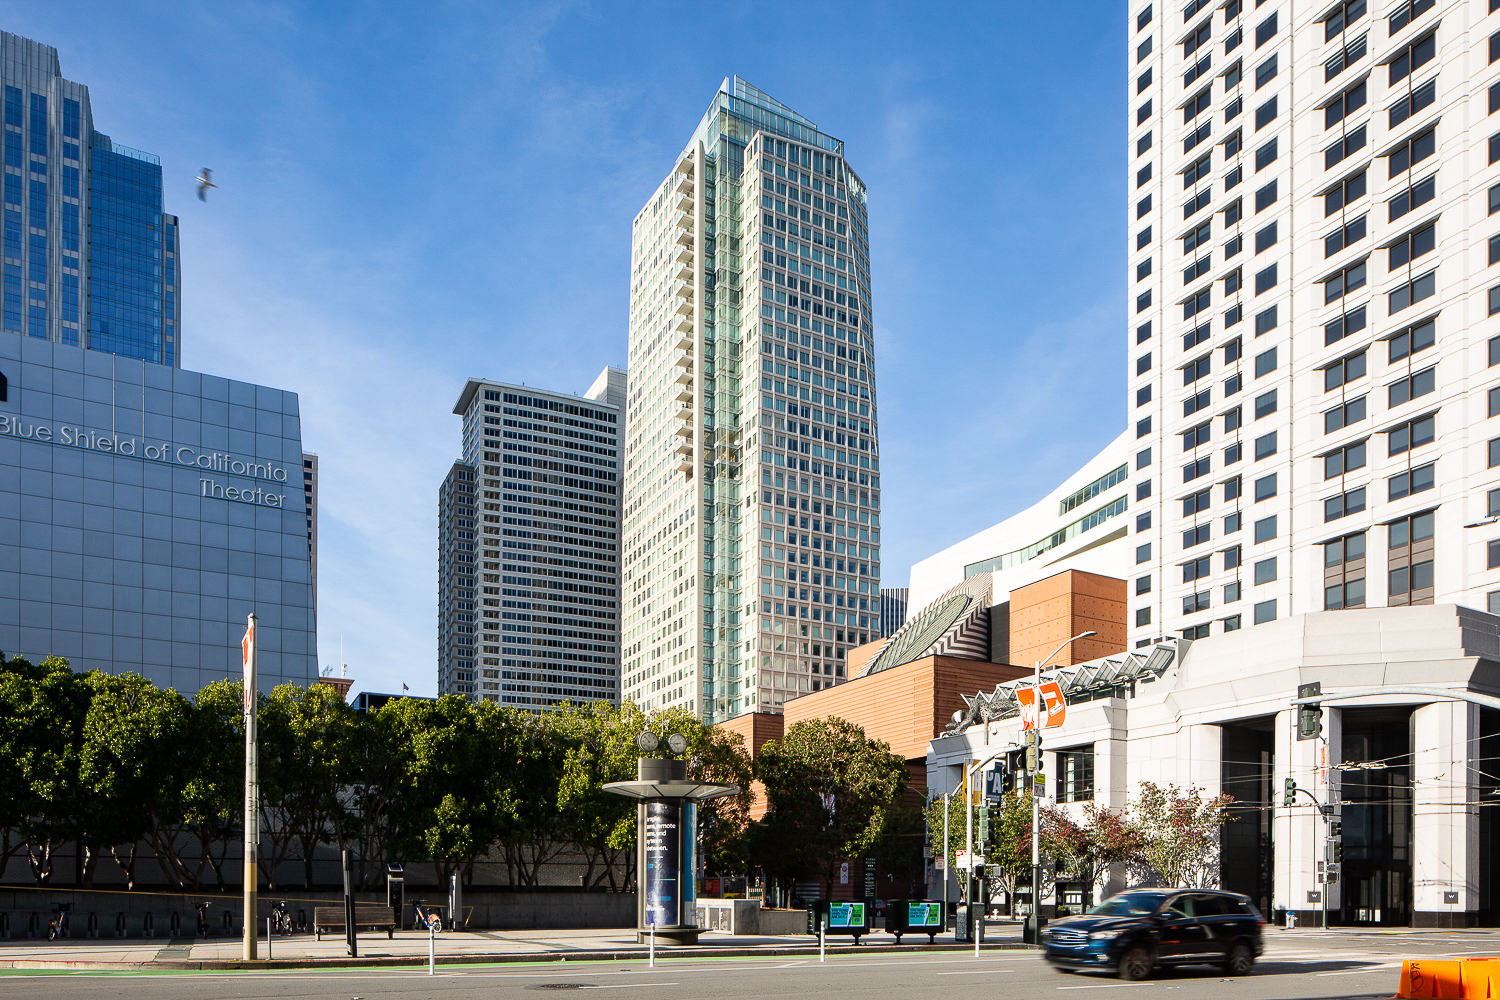 125 3rd Street St. Regis Hotel from Moscone Center, image by Andrew Campbell Nelson